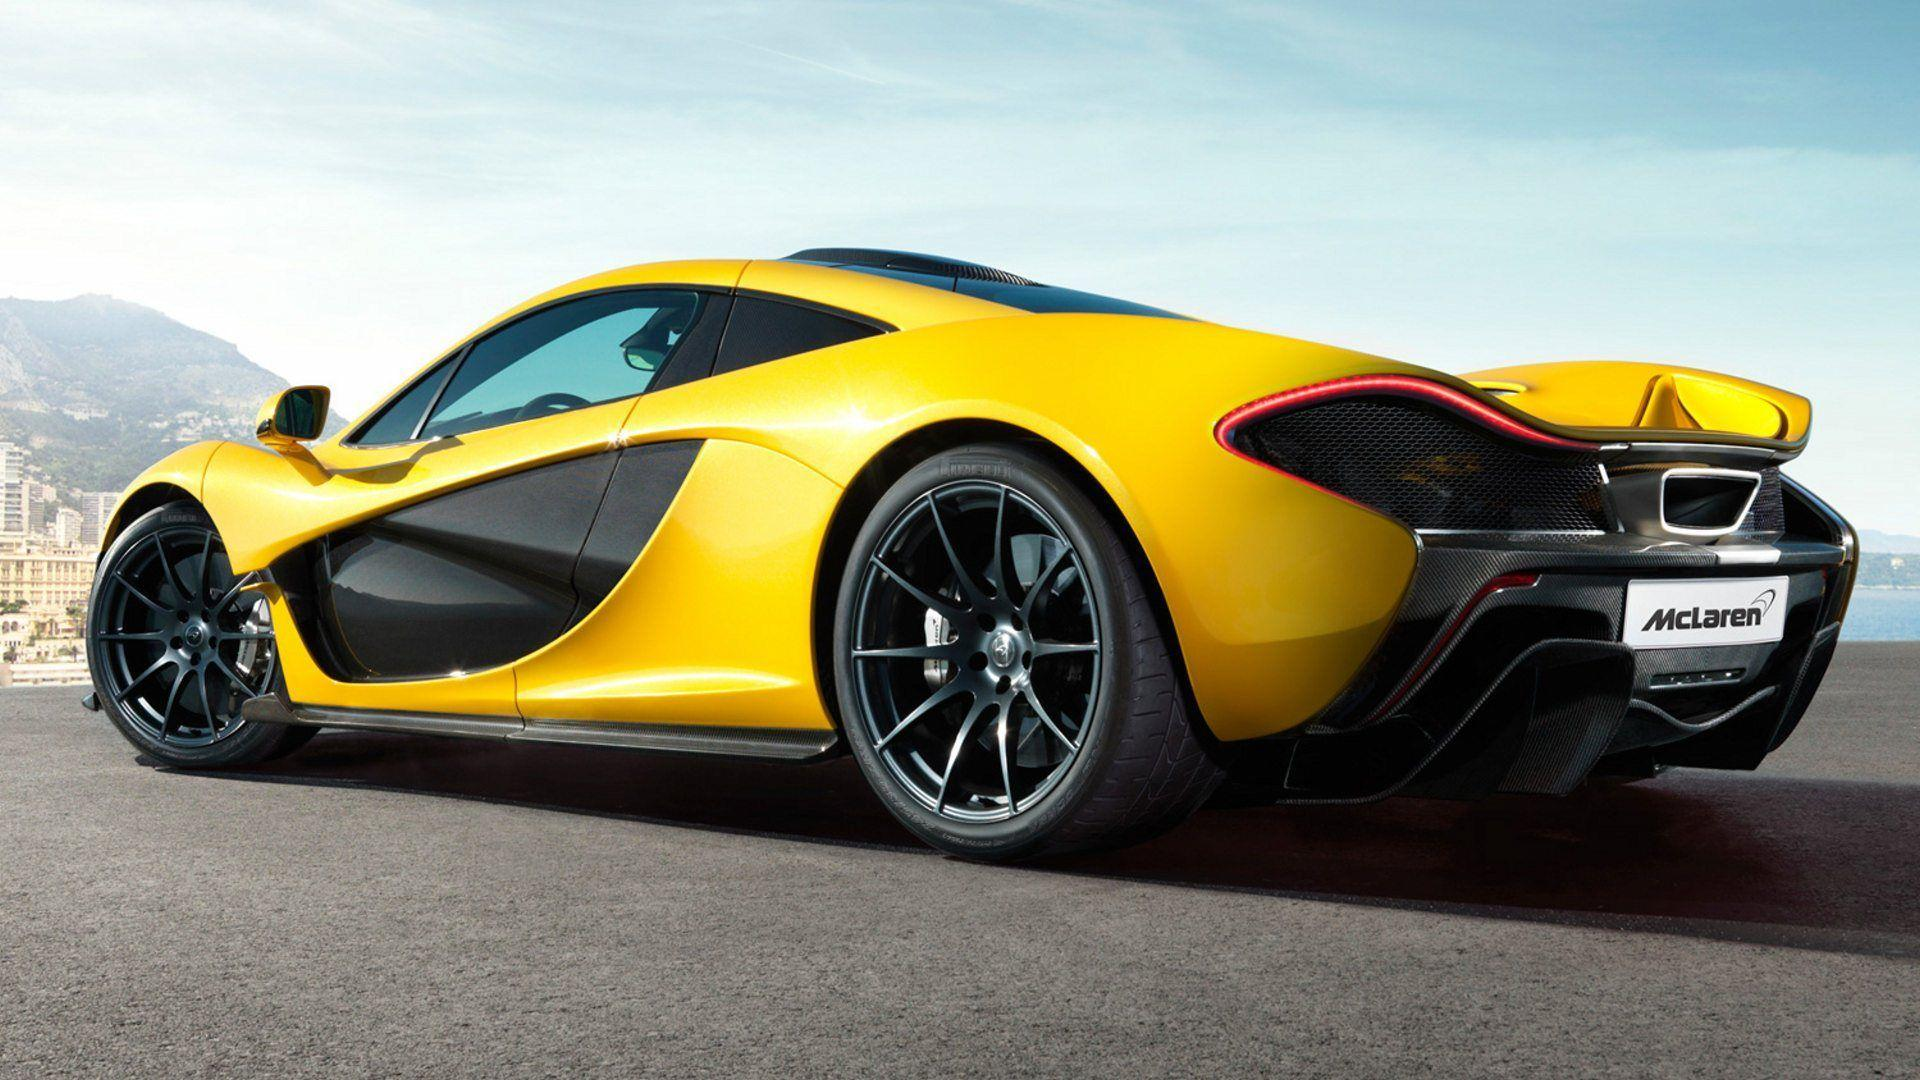 Mclaren Free Wallpapers And Screensavers HD Wallpapers Pictures